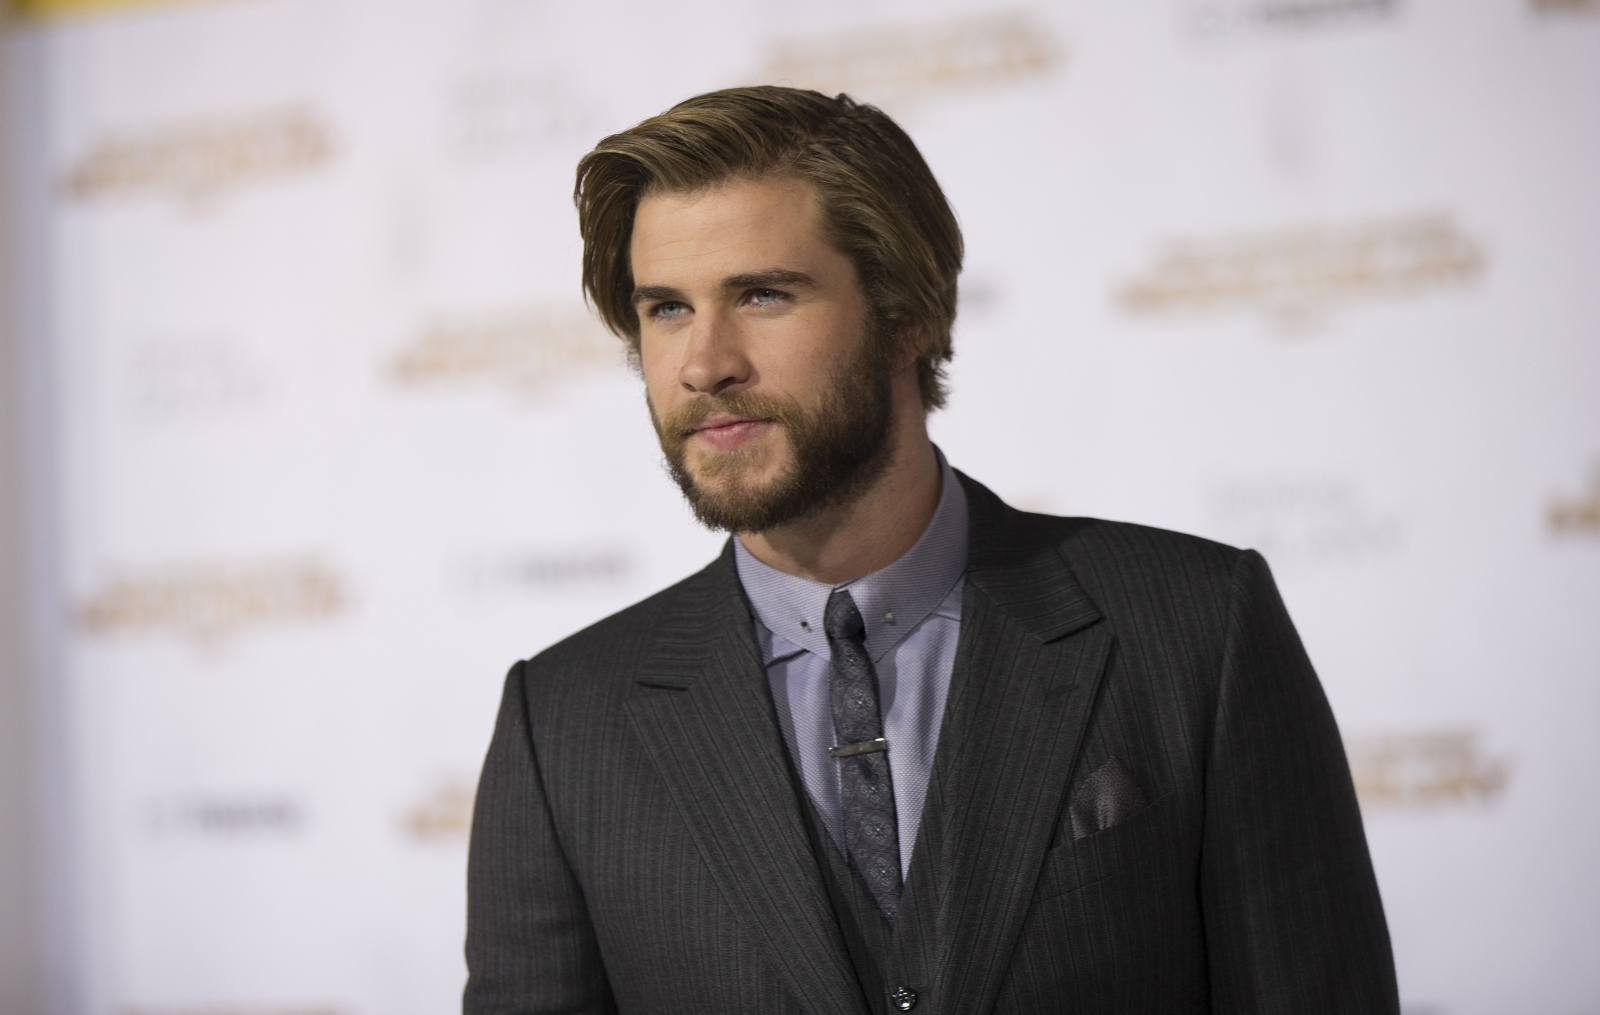 Liam Hemsworth Miley Cyrus dating Patrick Schwarzenegger.